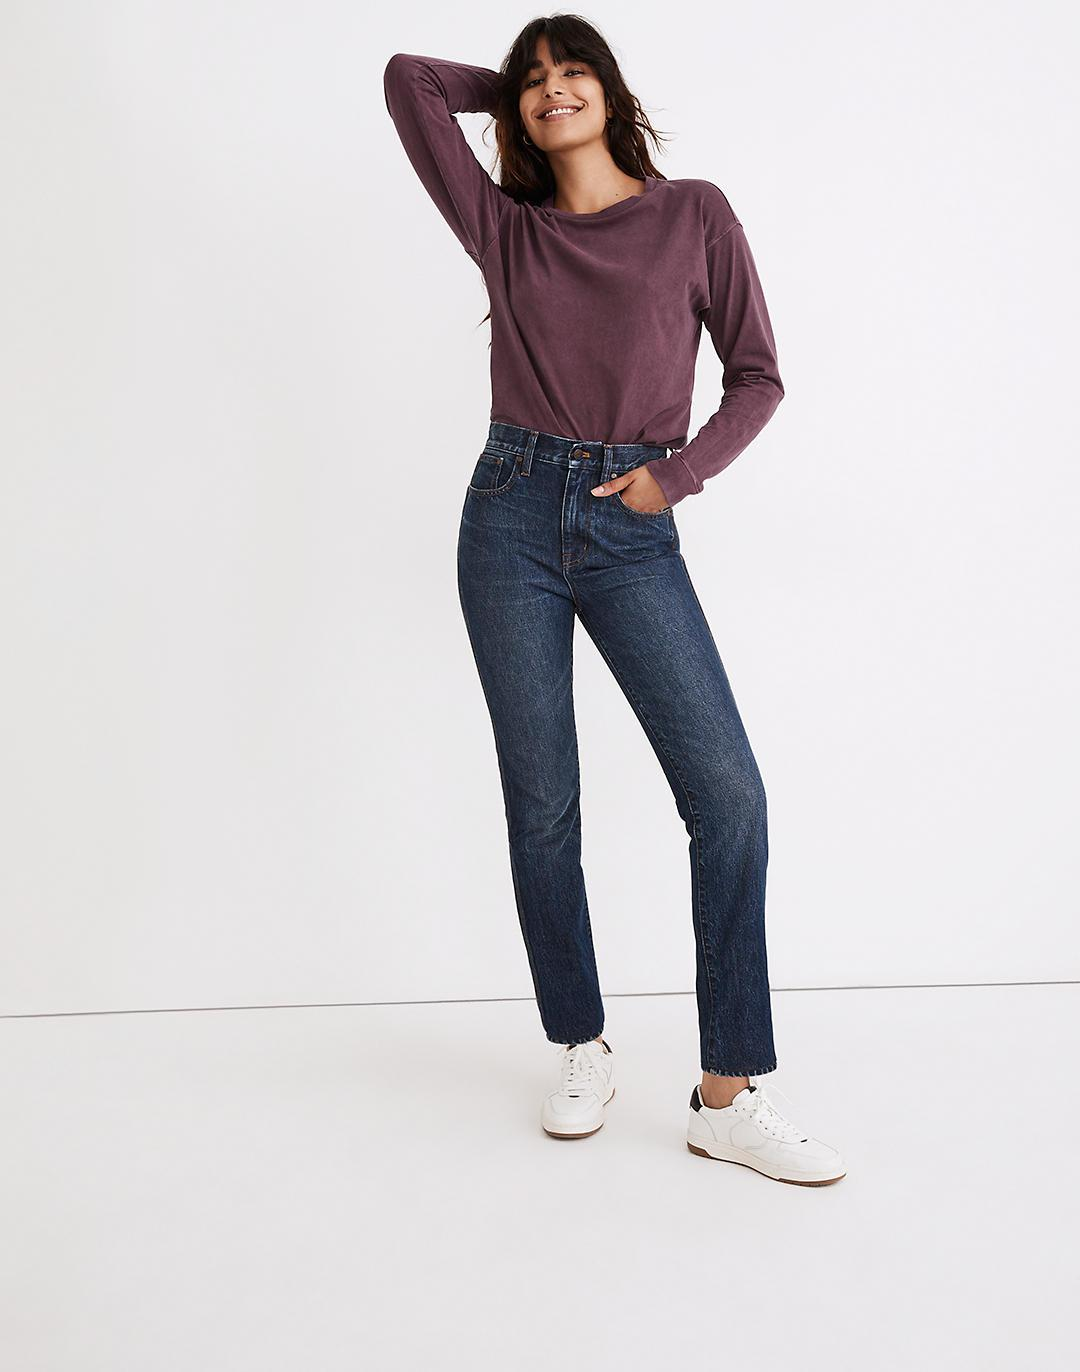 The Perfect Vintage Jean in Diversey Wash: Retro Stitched Edition